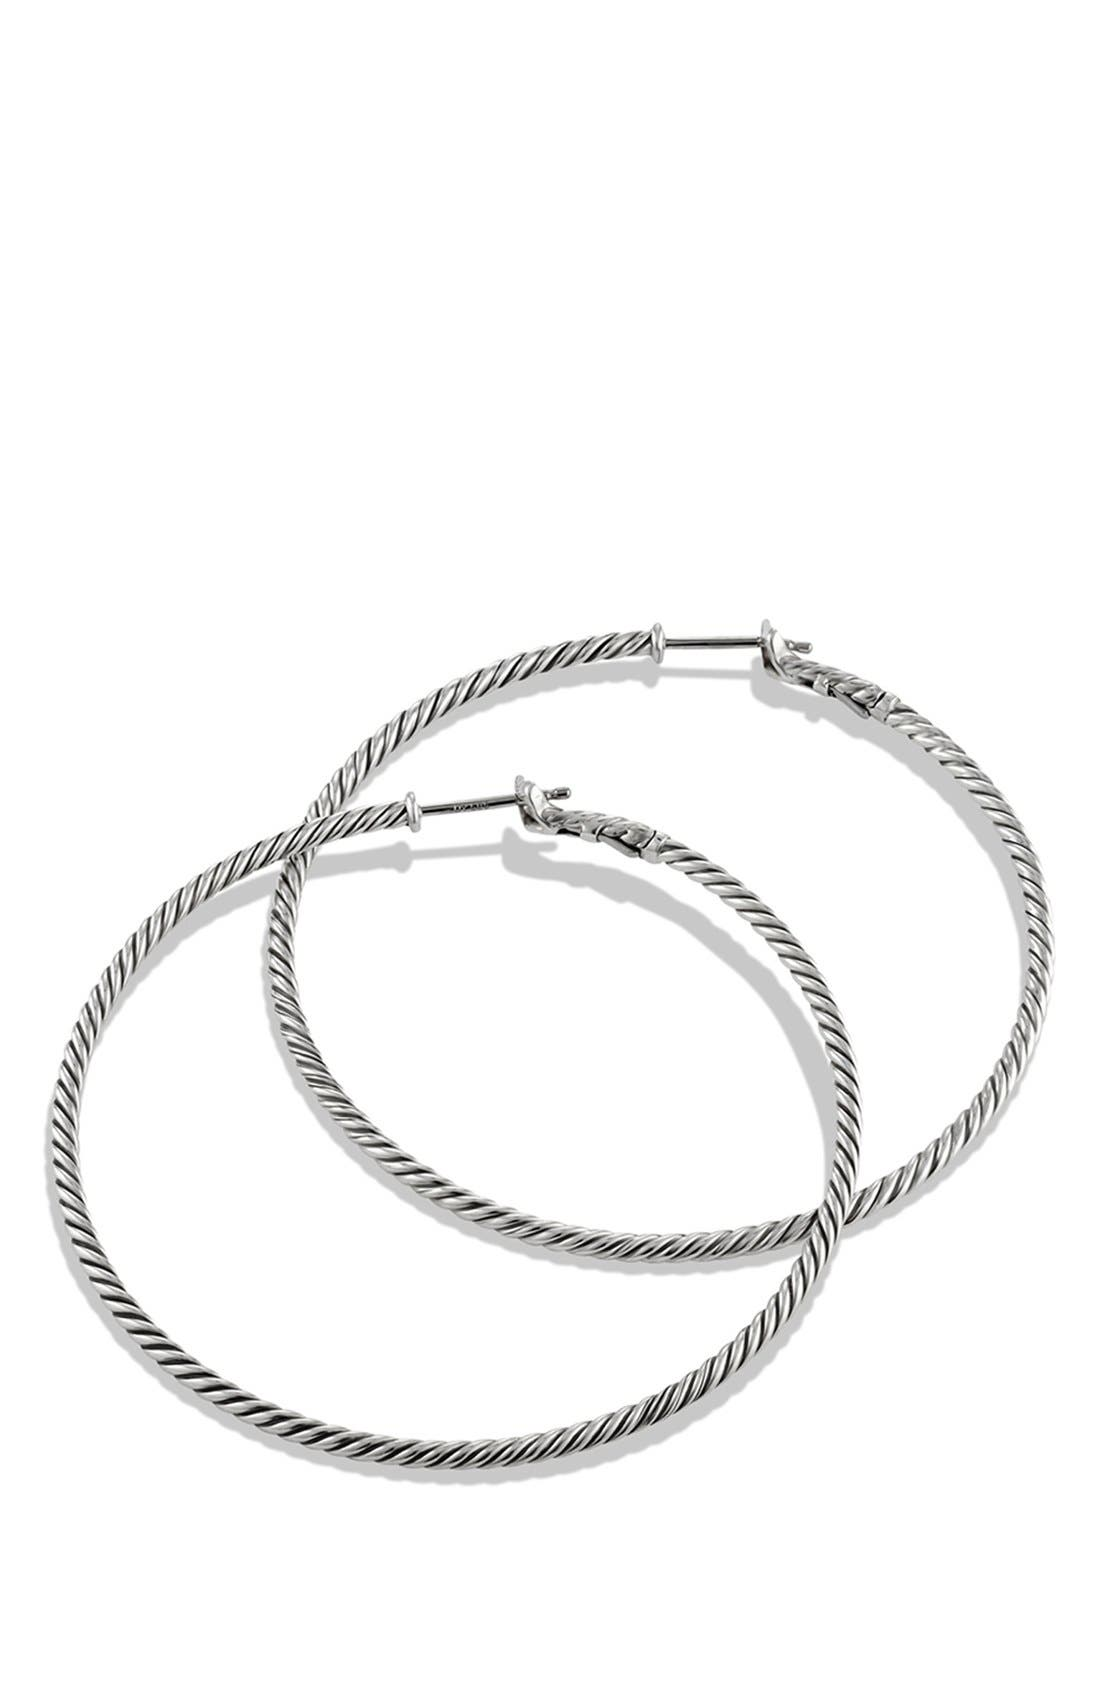 'Cable Classics' Hoop Earrings,                             Alternate thumbnail 3, color,                             SILVER